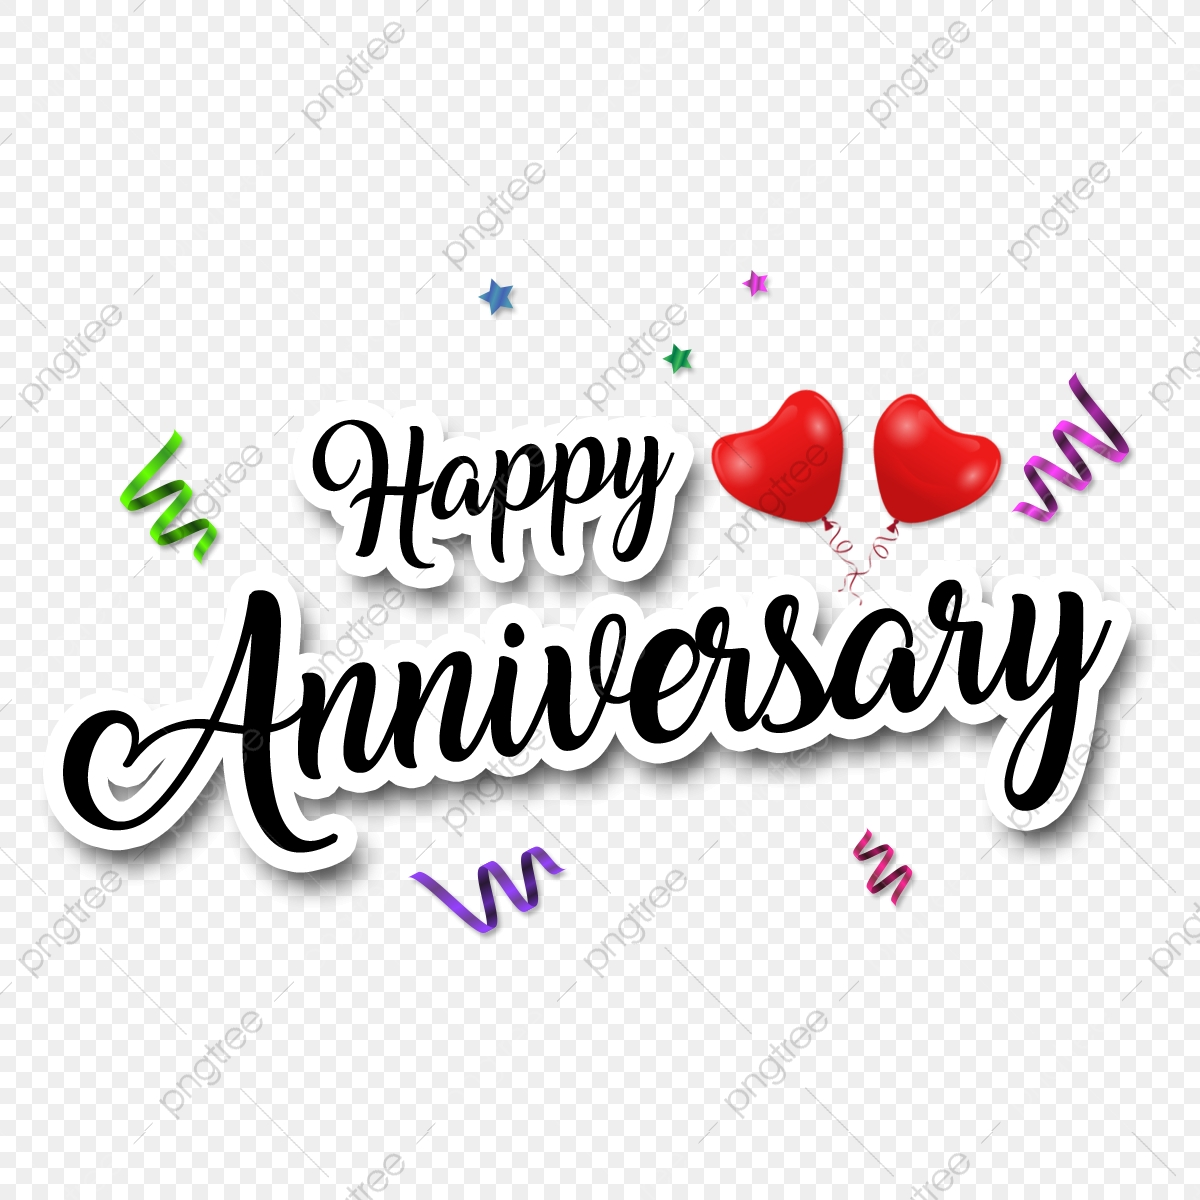 Happy Anniversary Transparent Background Sticker Anniversary Wedding Anniversary Happy Anniversary Png Transparent Clipart Image And Psd File For Free Download